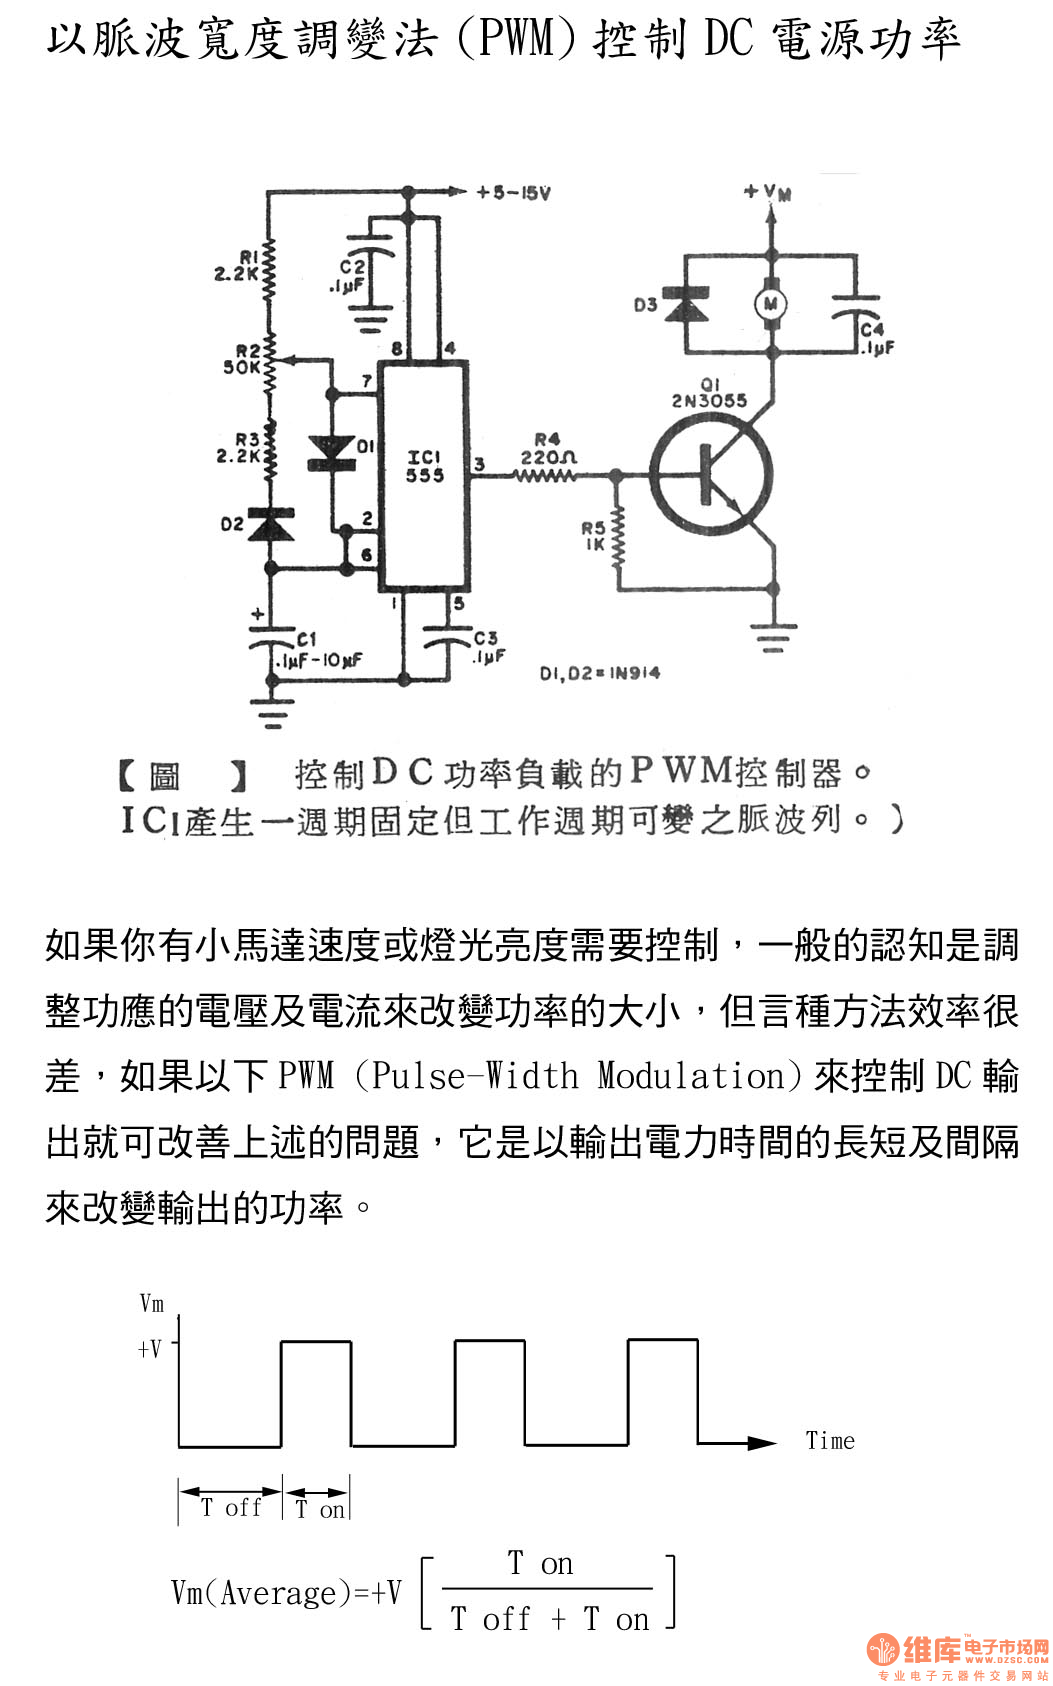 Pwm Controller Of Controlling Dc Power Load Circuit Diagram And Schematic Principle Analysis555